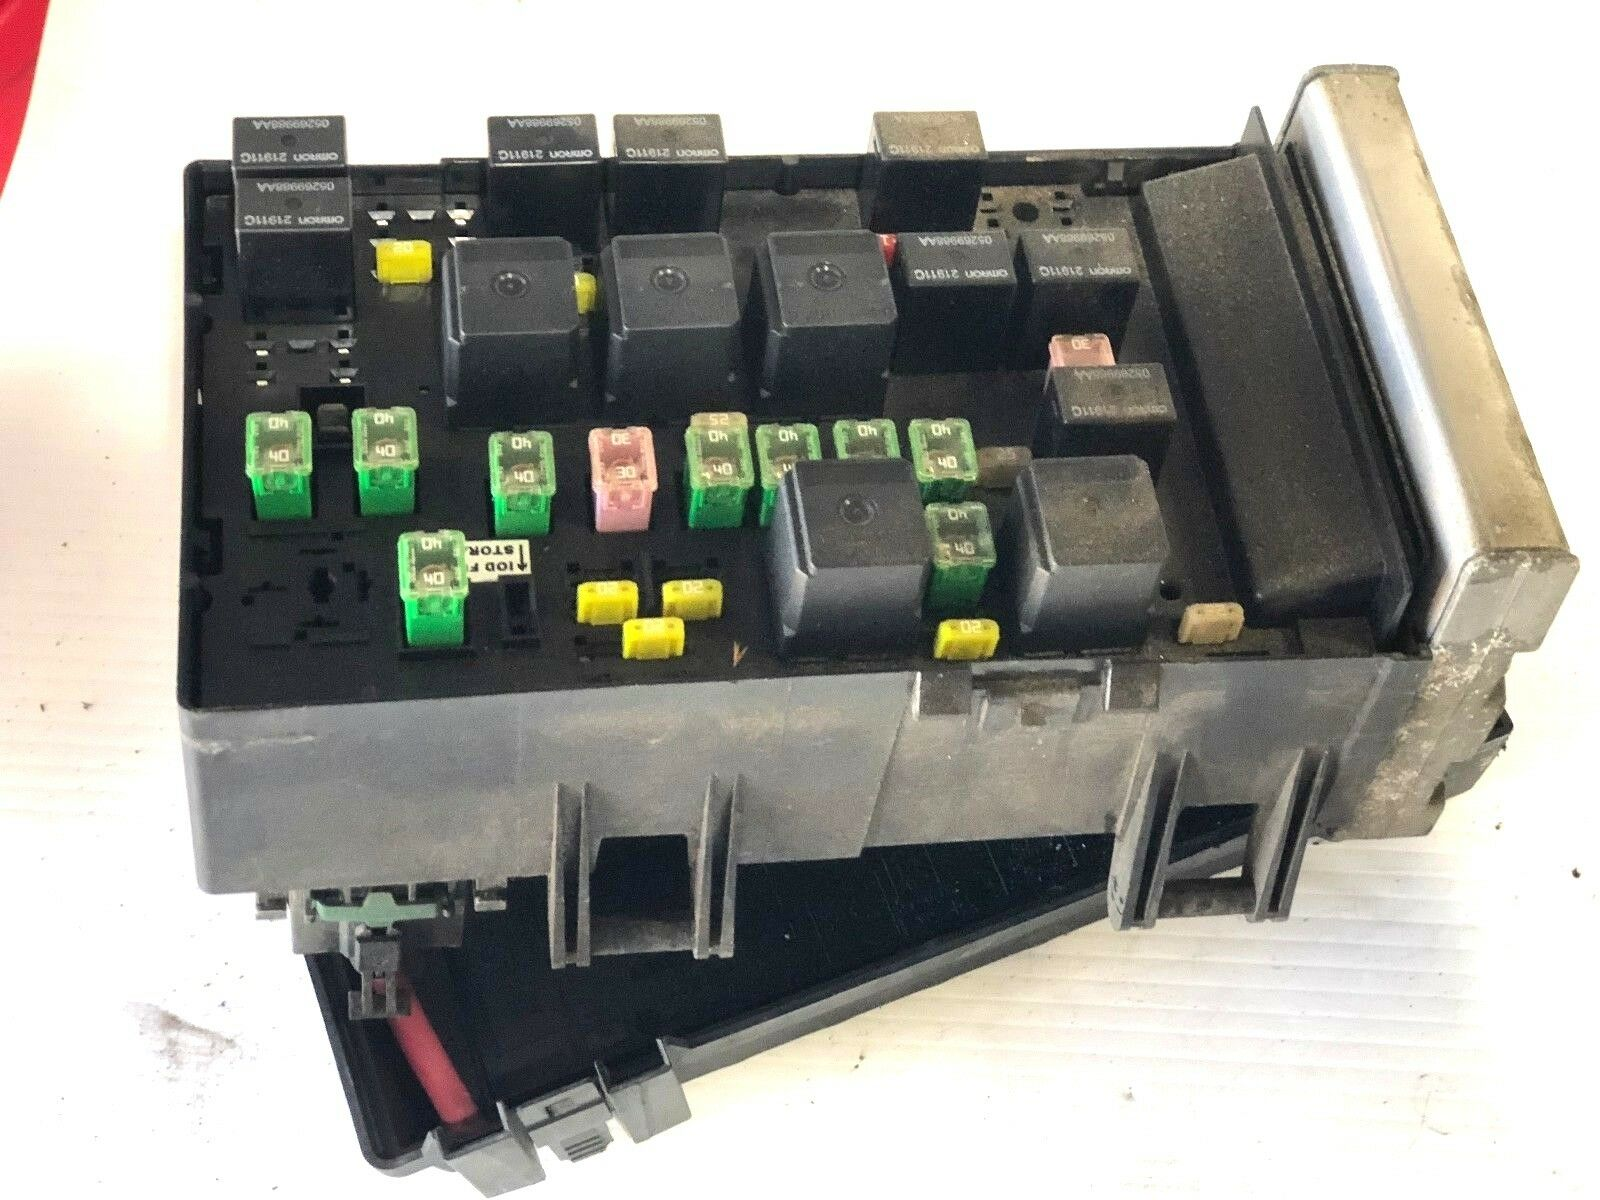 2003 - 2005 Dodge Caravan Power Module Fuse Box Relay Control Unit  05144506AF OE 1 of 5Only 1 available ...